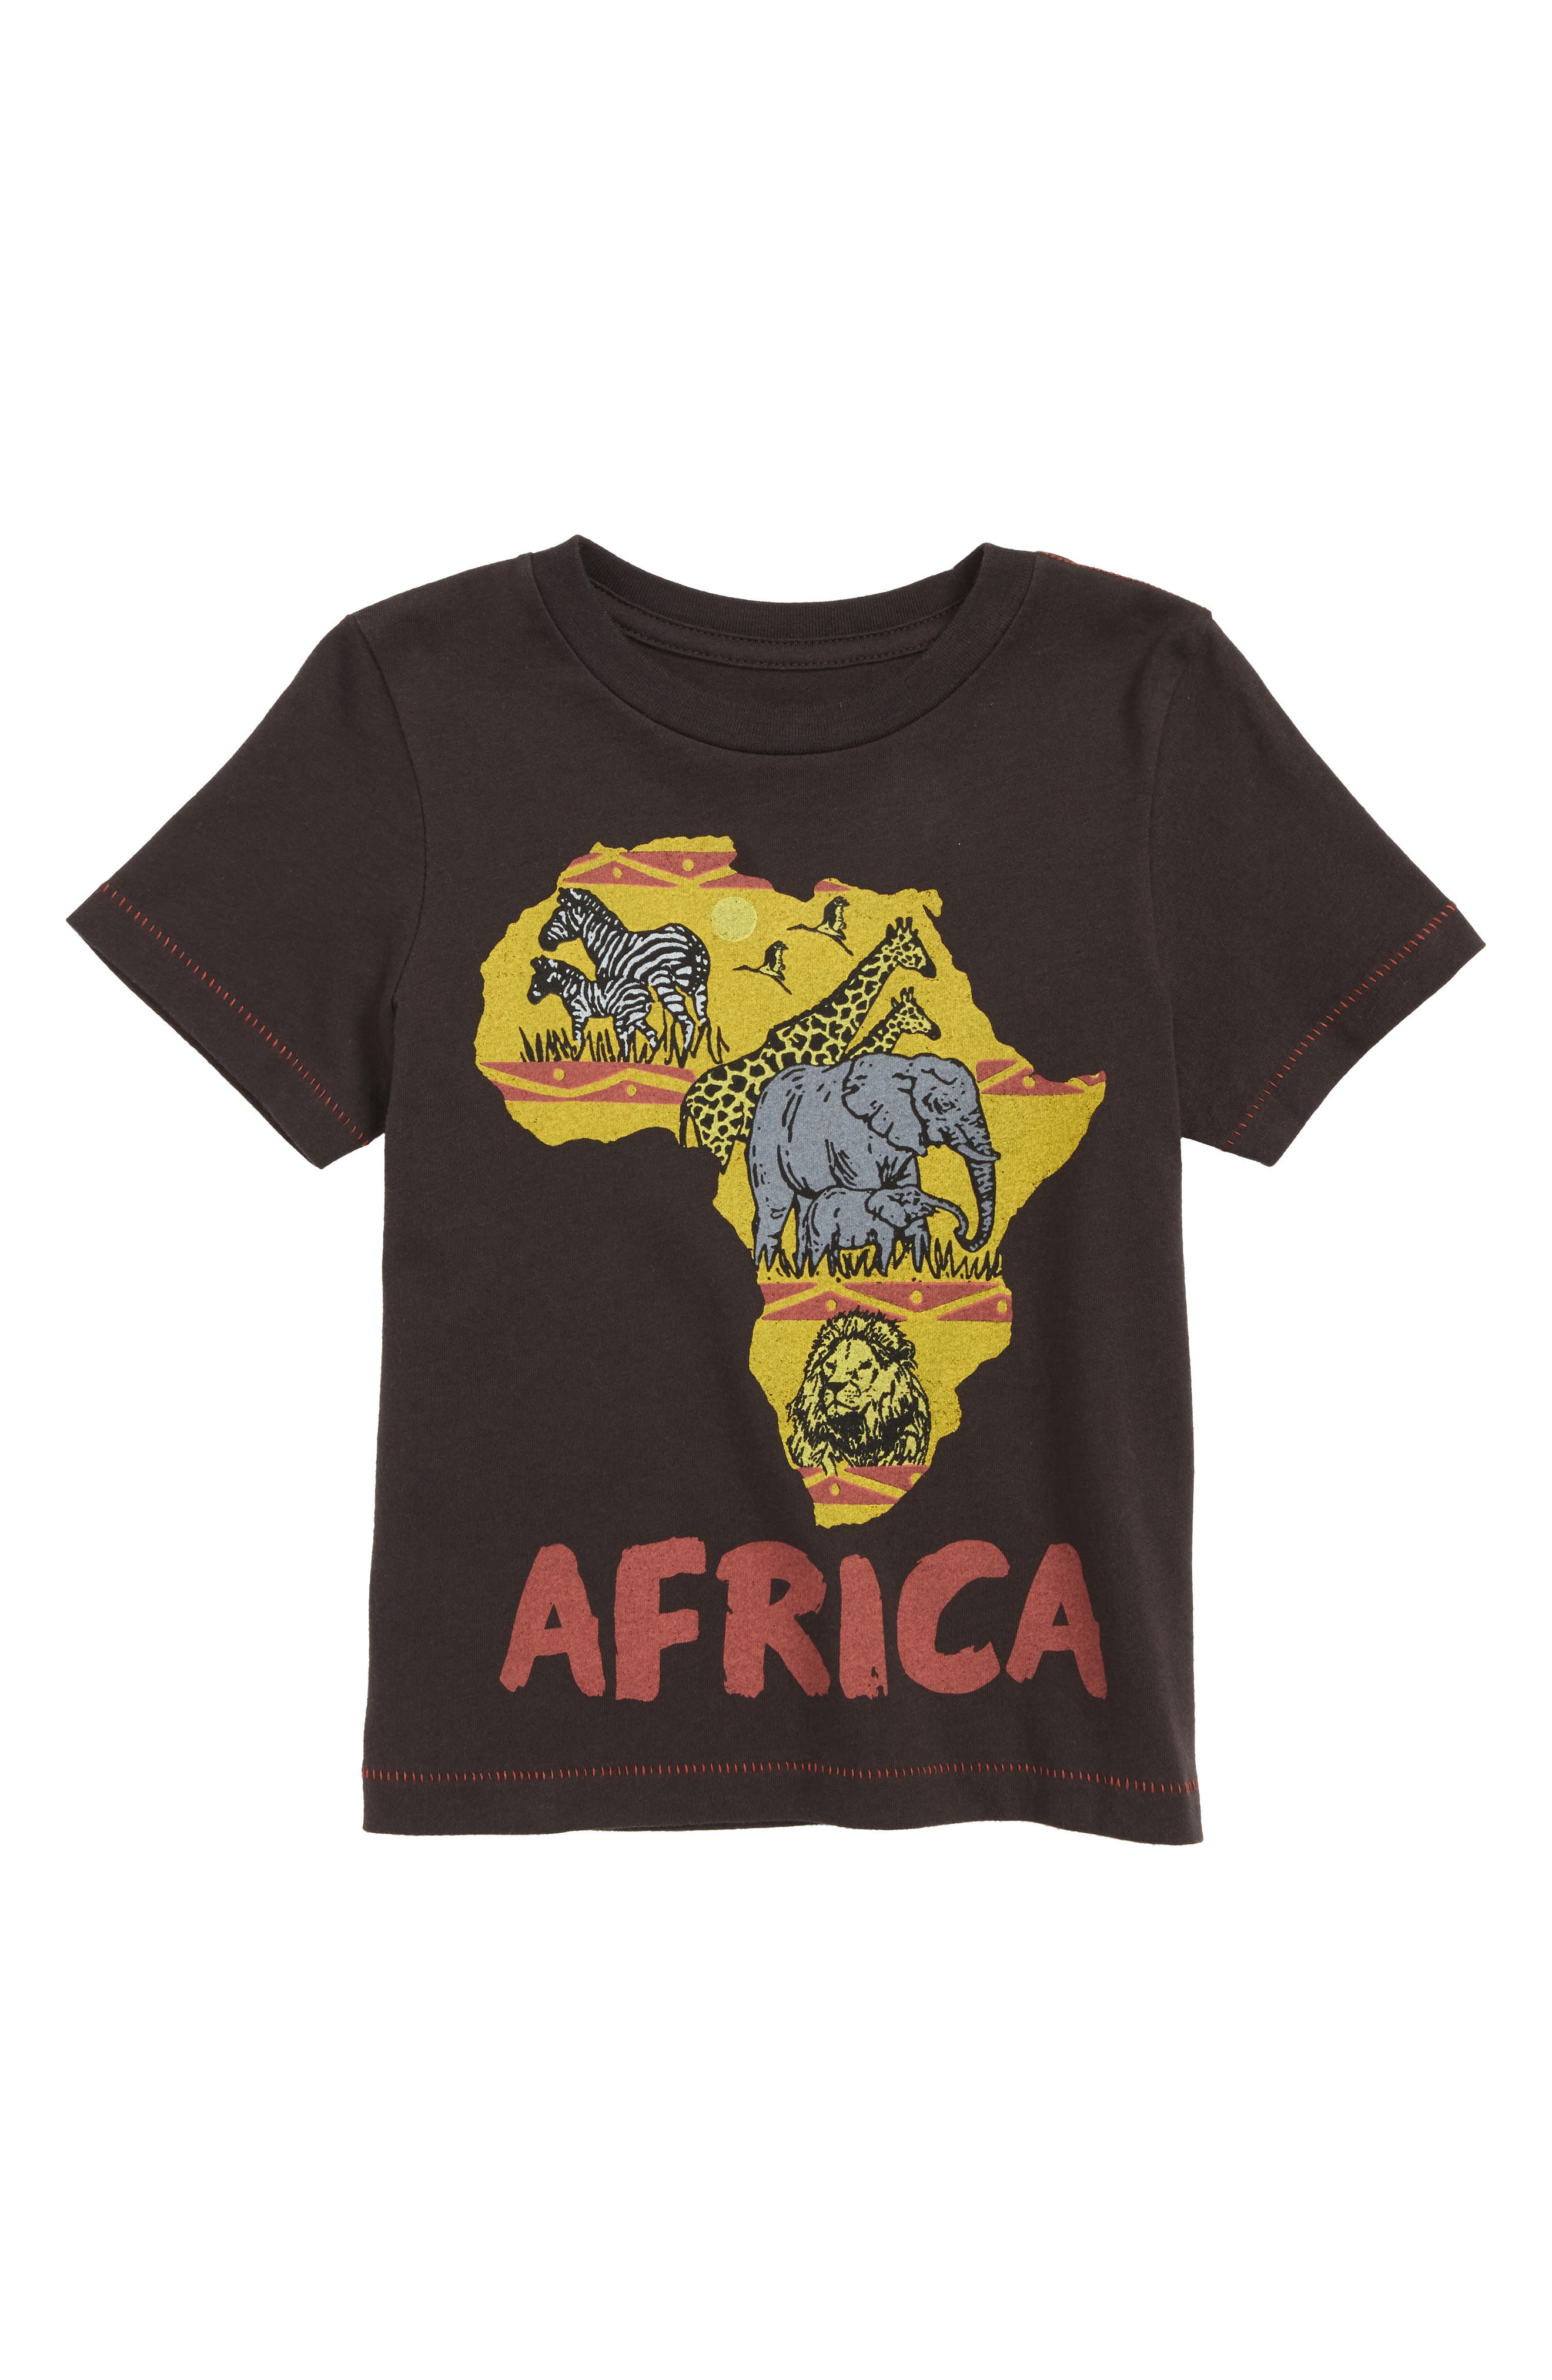 Africa Graphic T-Shirt,                         Main,                         color, 001